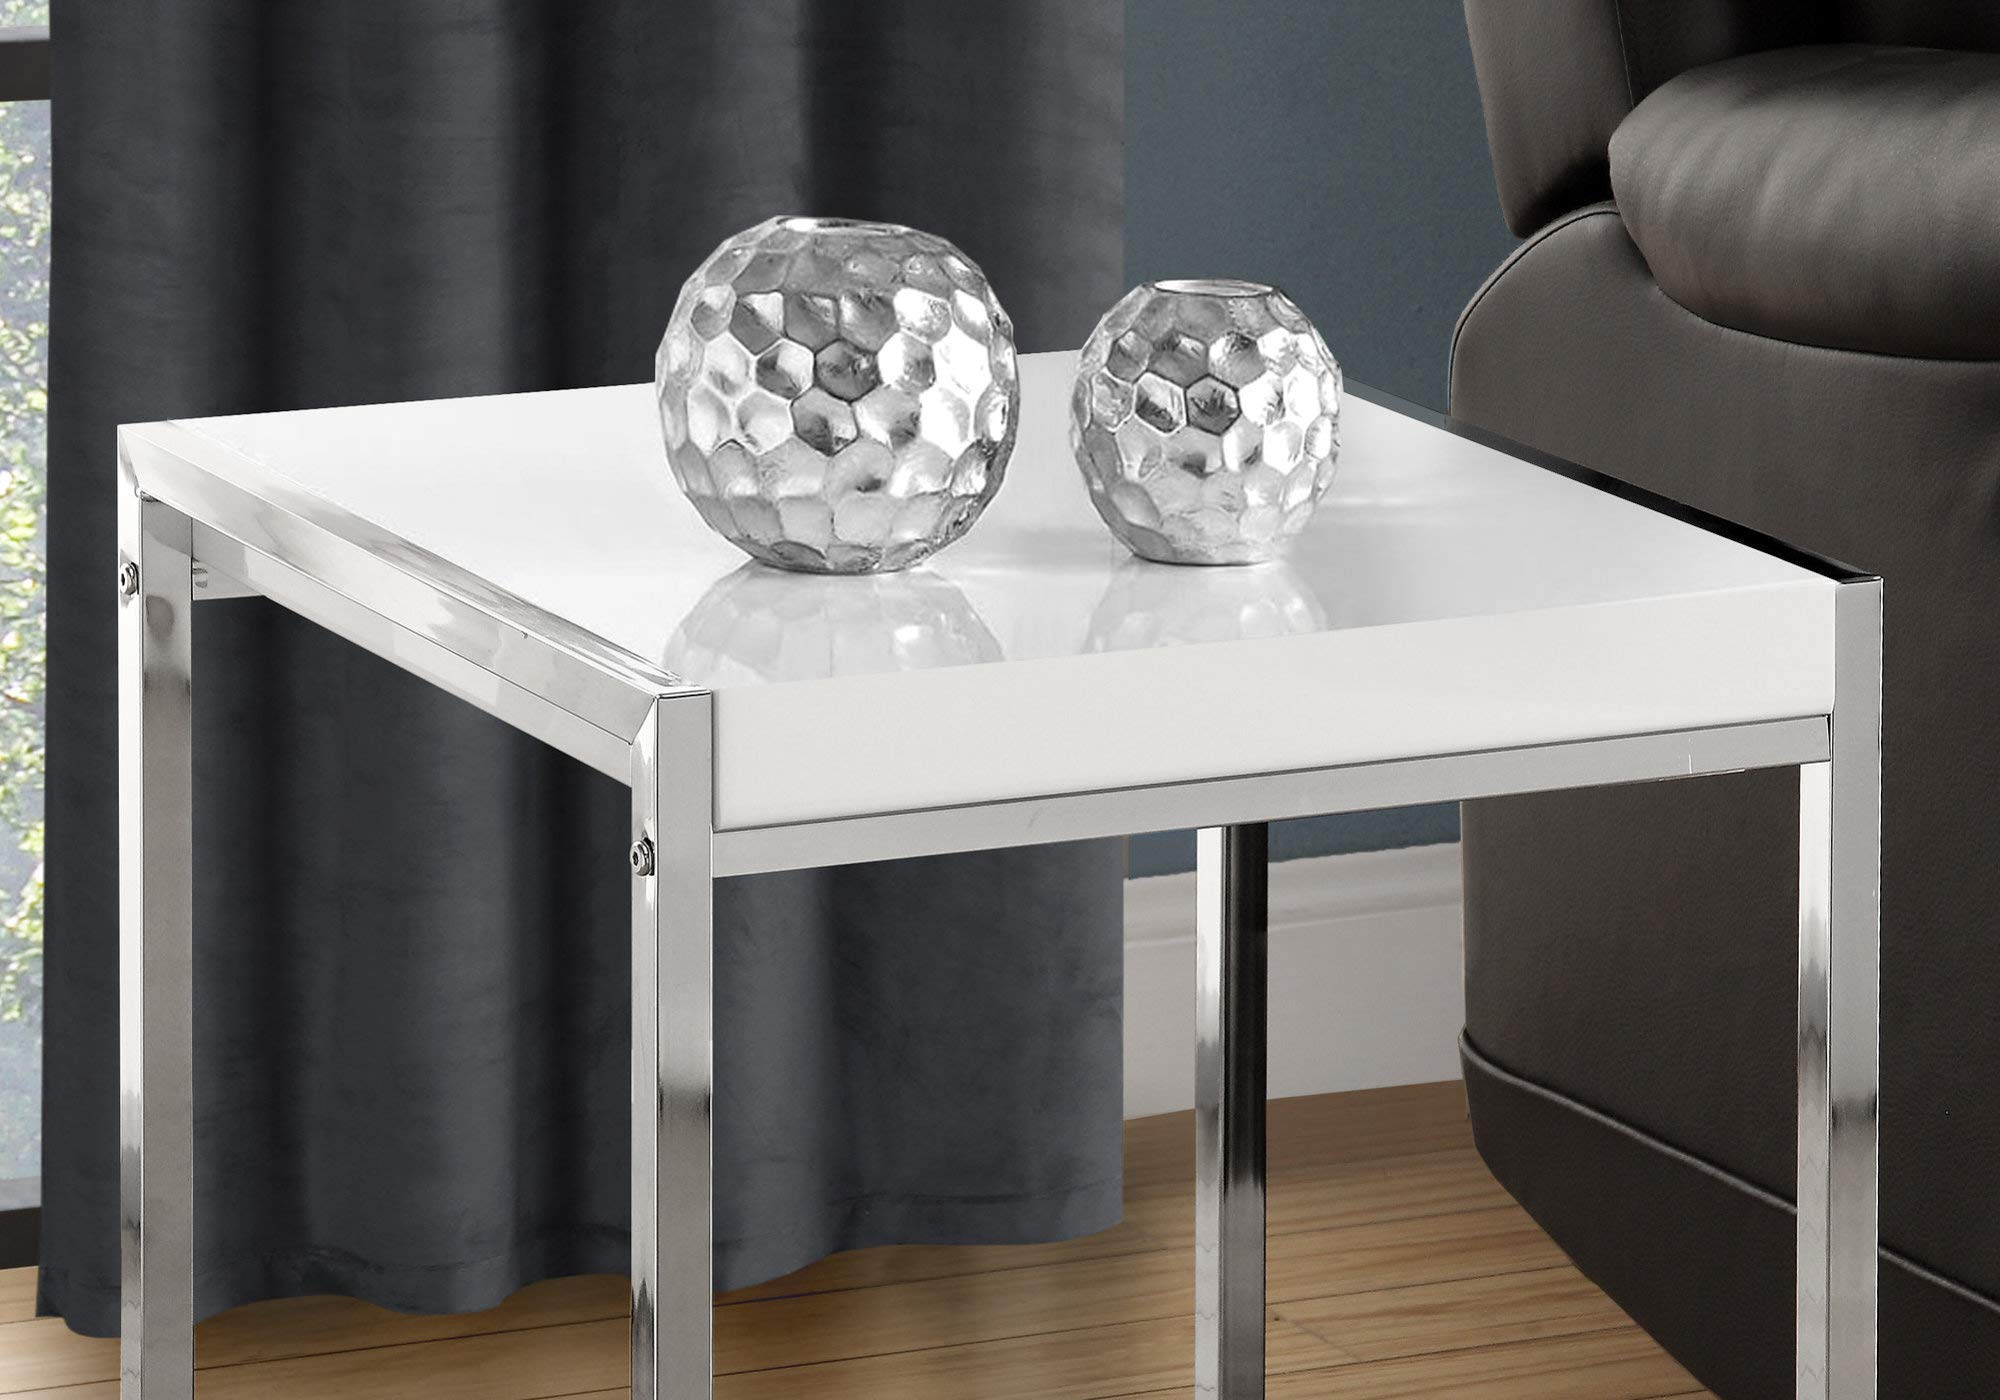 Monarch I 3050 Metal Accent Table, White Acrylic/Chrome by Monarch Specialties (Image #6)